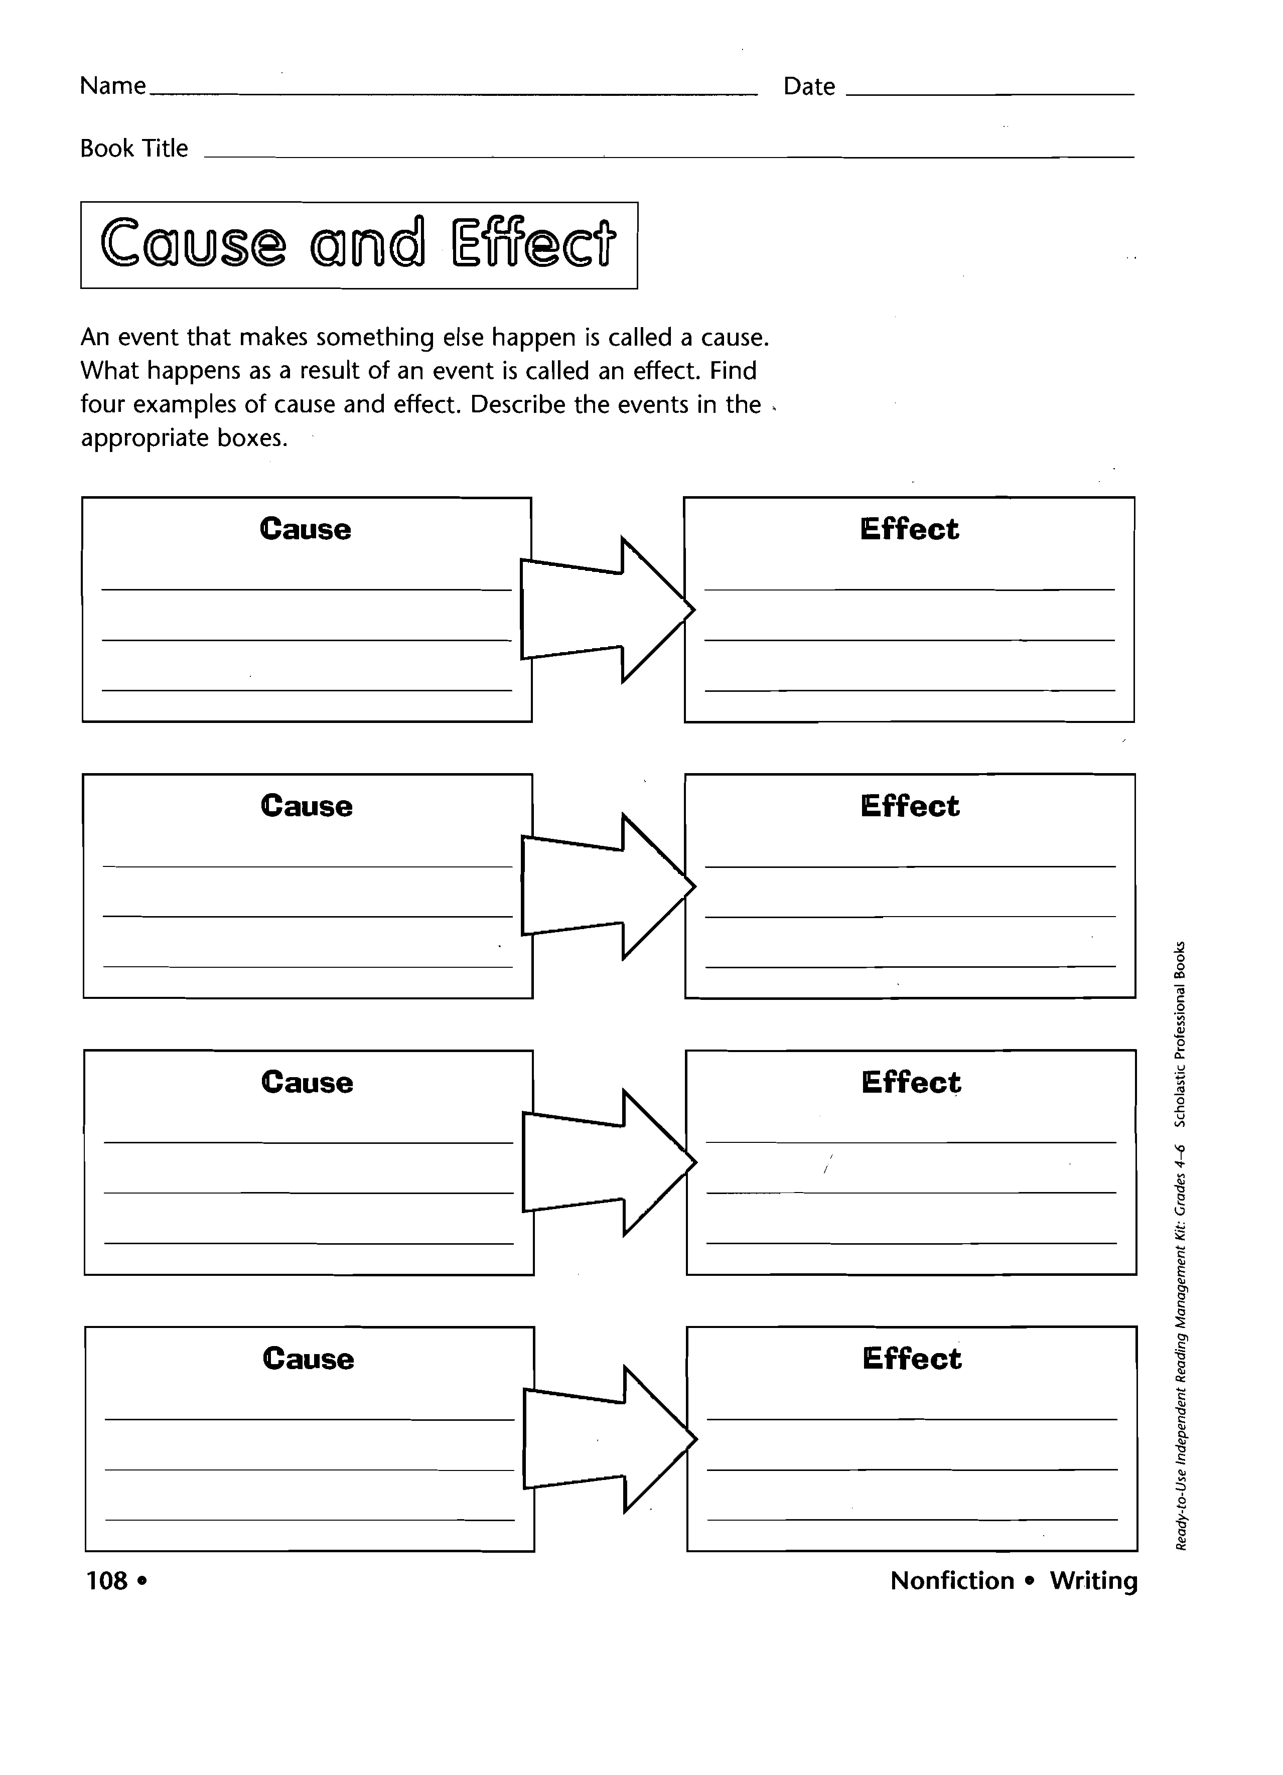 graphic organizers printable | printable cause effect graphic